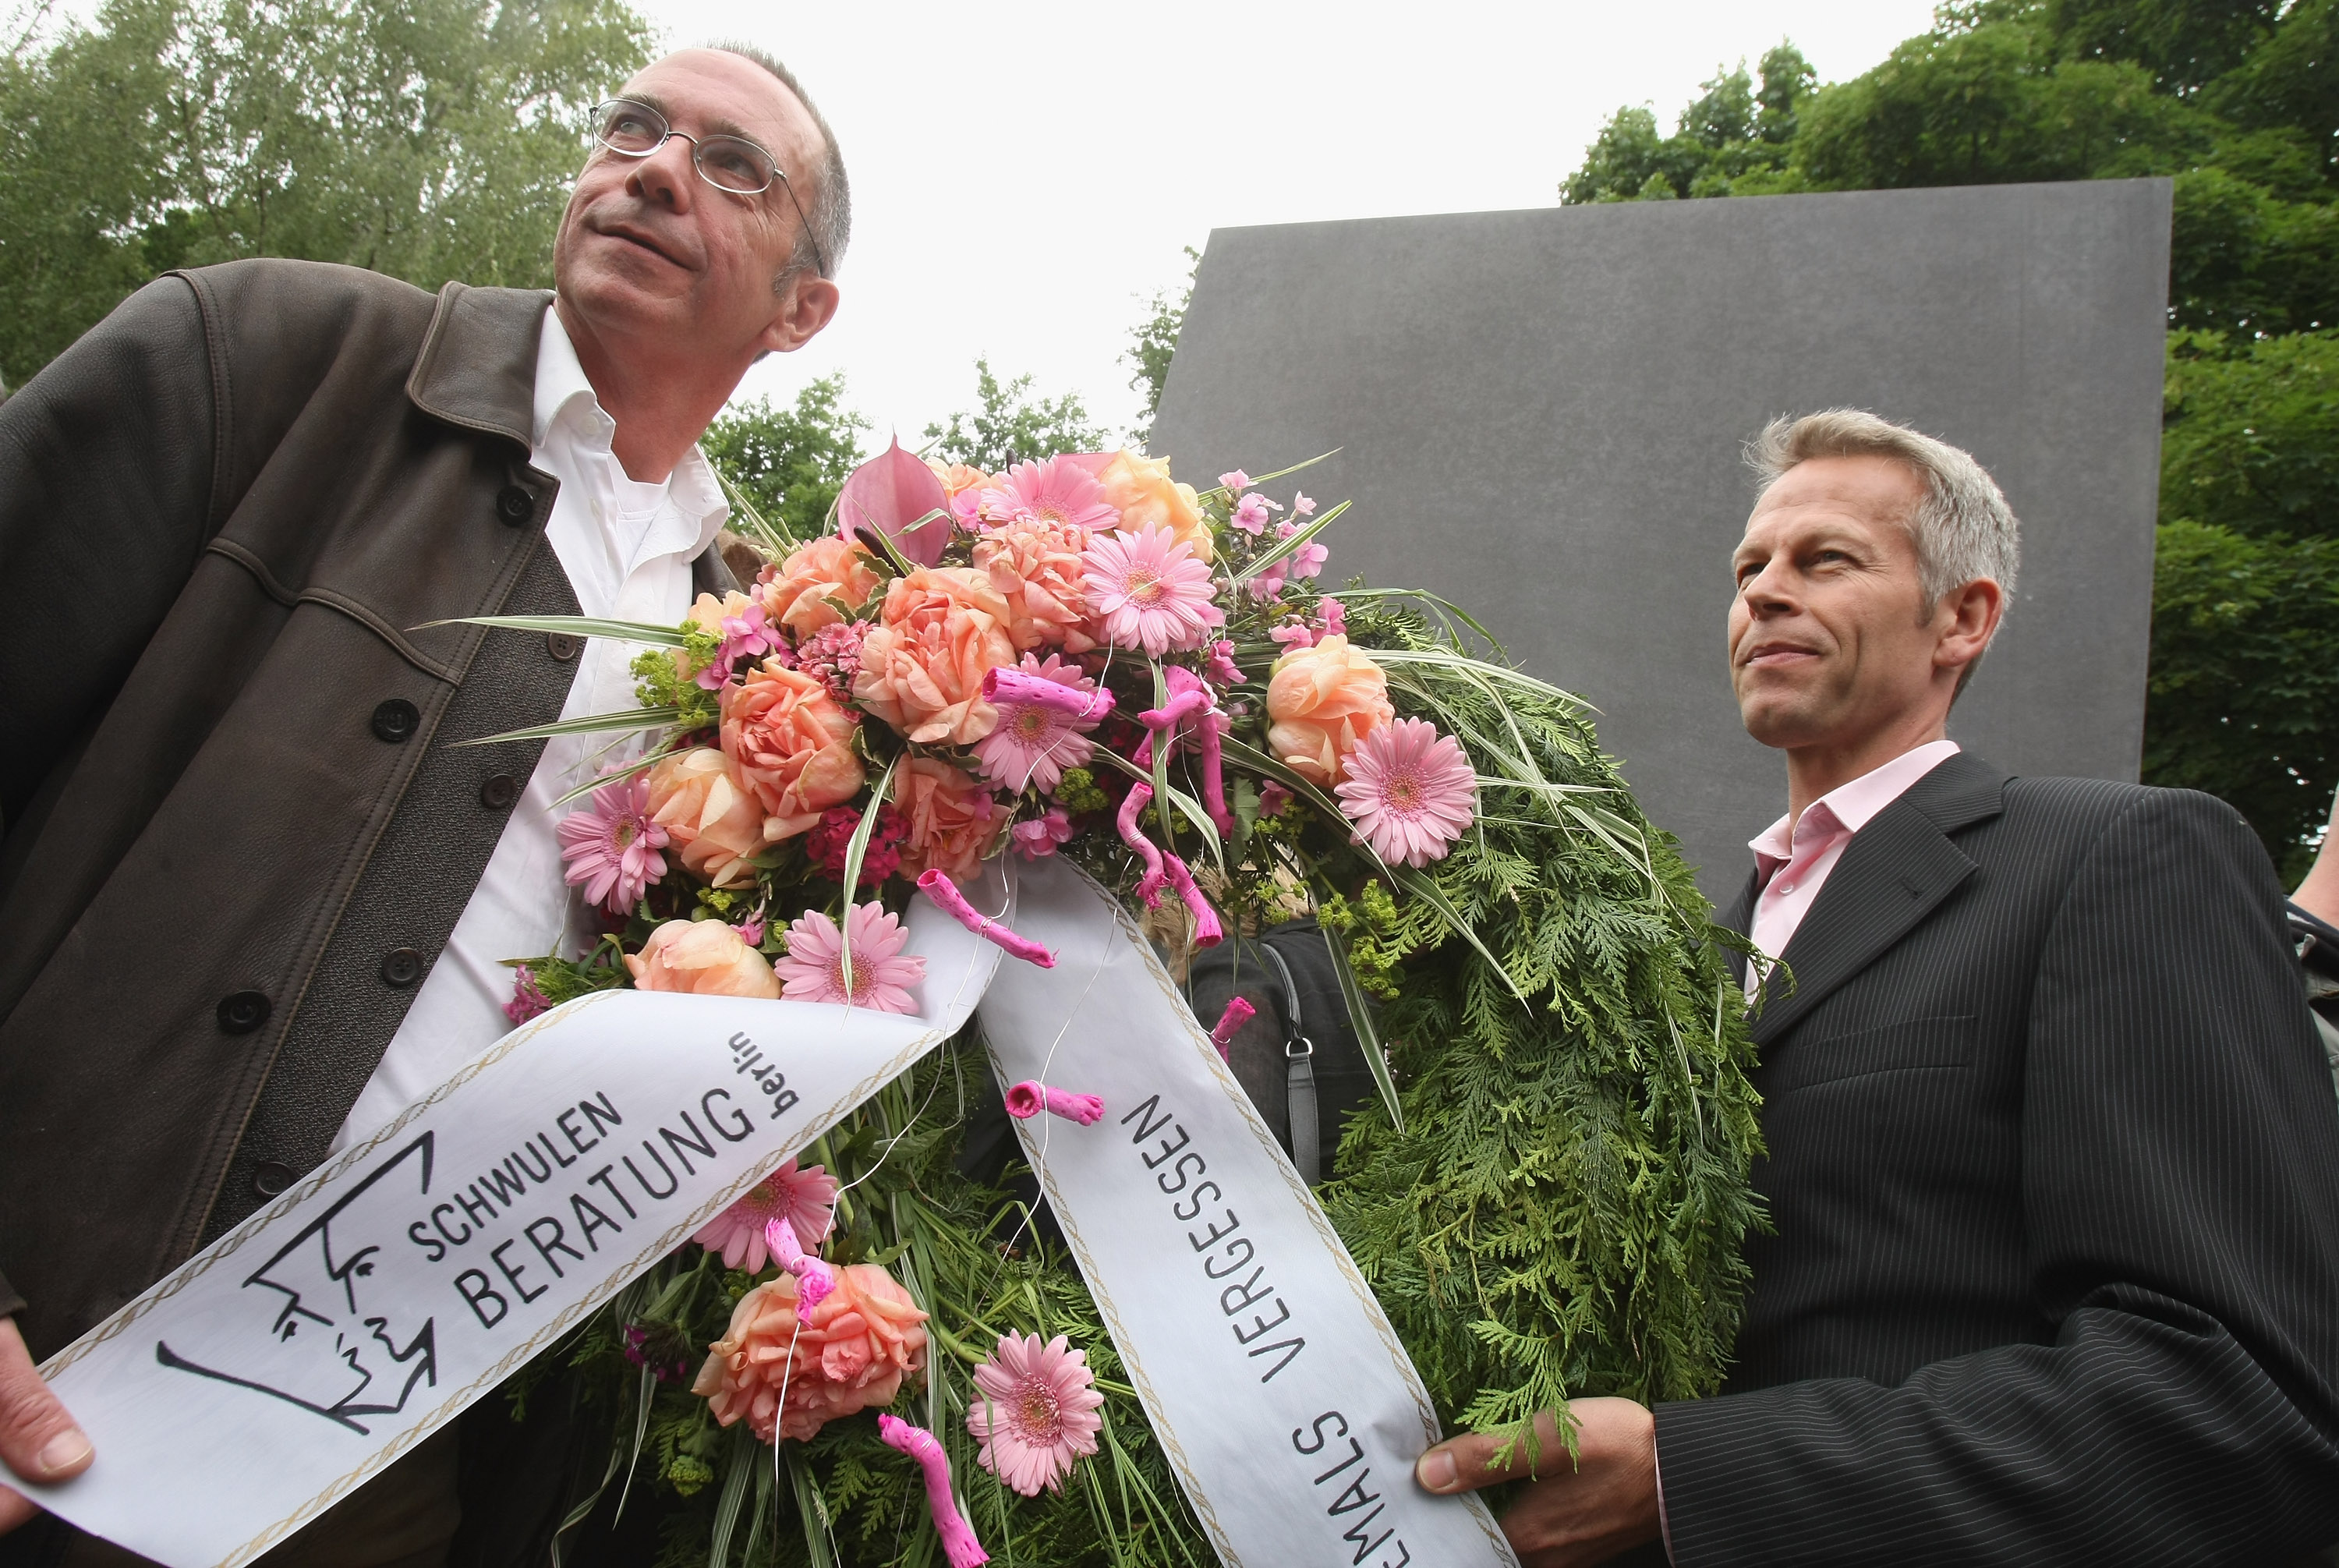 Two men from a gay counseling organization hold a wreath.